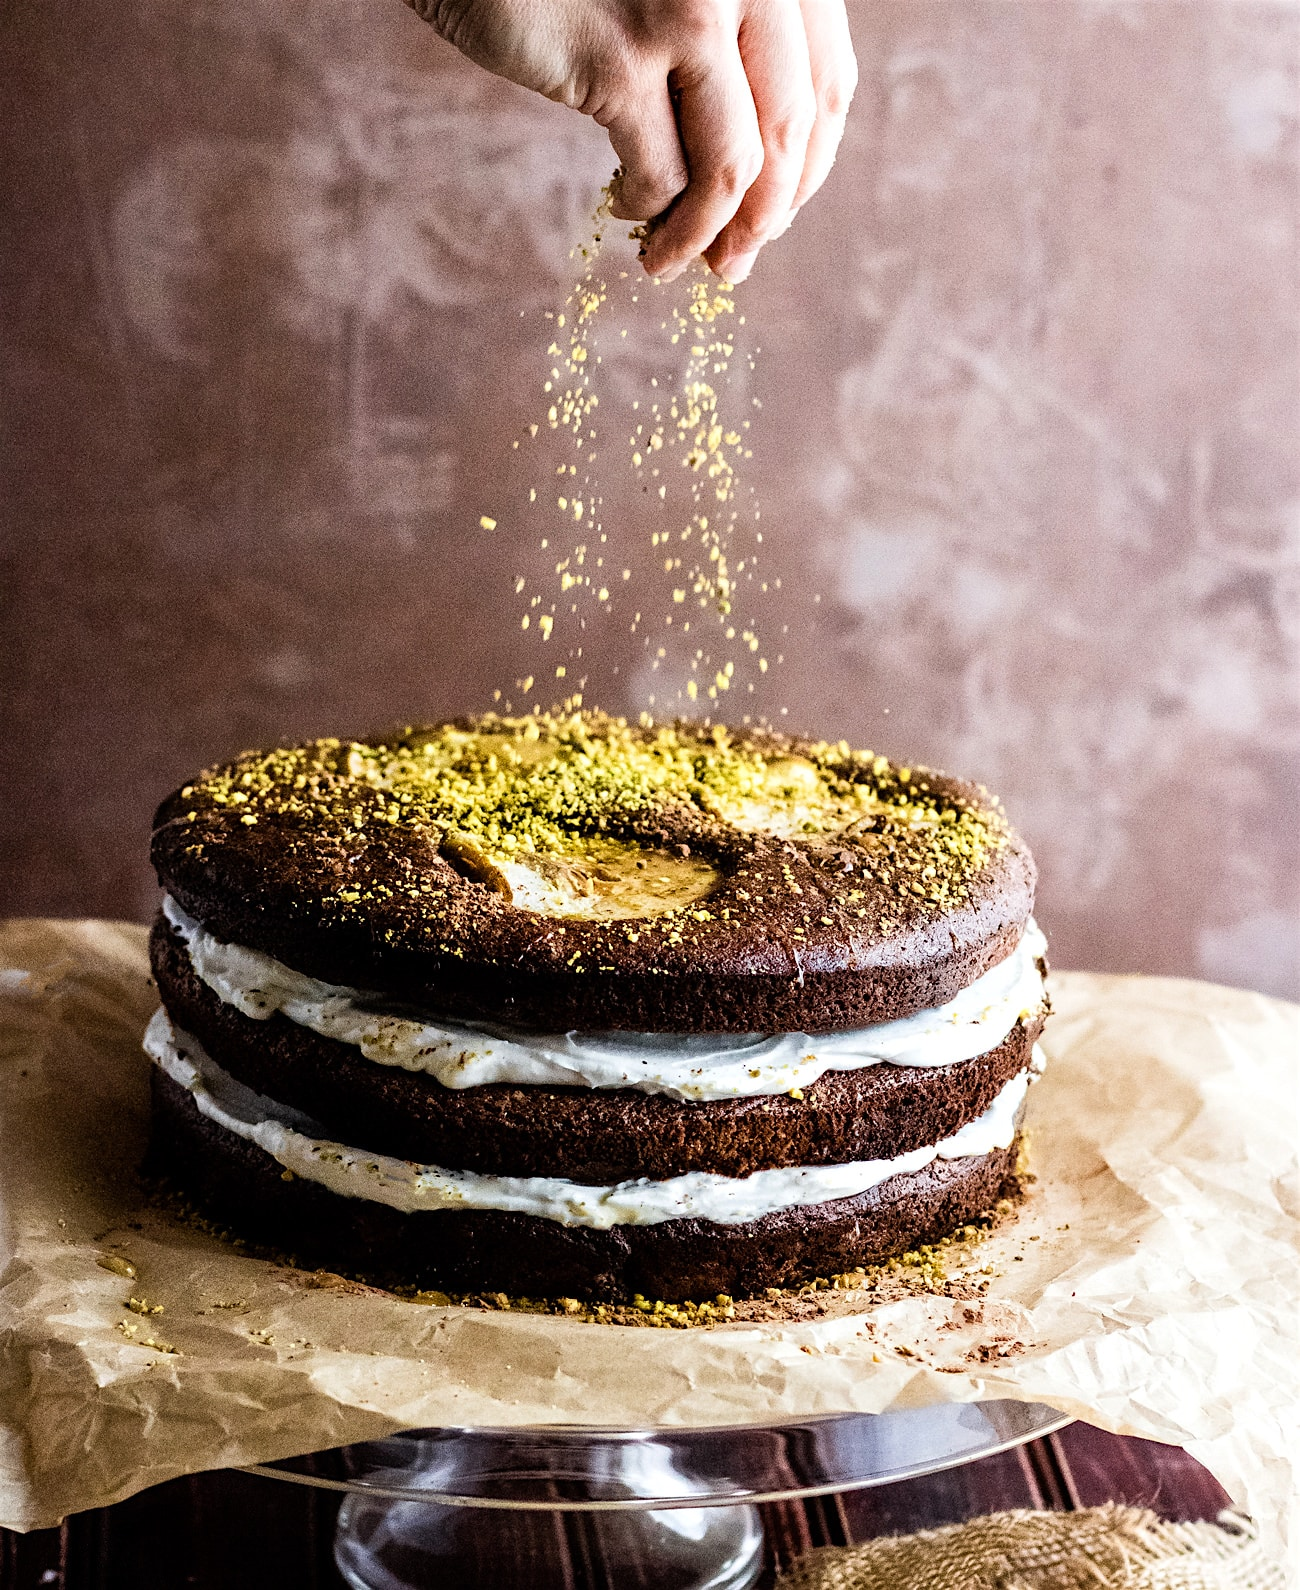 Flourless Chocolate Pistachio Pear Naked Layer Cake. A paleo flourless chocolate layered cake that is light in texture, rich in taste, and delicious! Filled with maple coconut cream then topped with cocoa, glazed pears, and pistachio! This naked cake is simple to make. A decadent dessert that feeds a crowd!